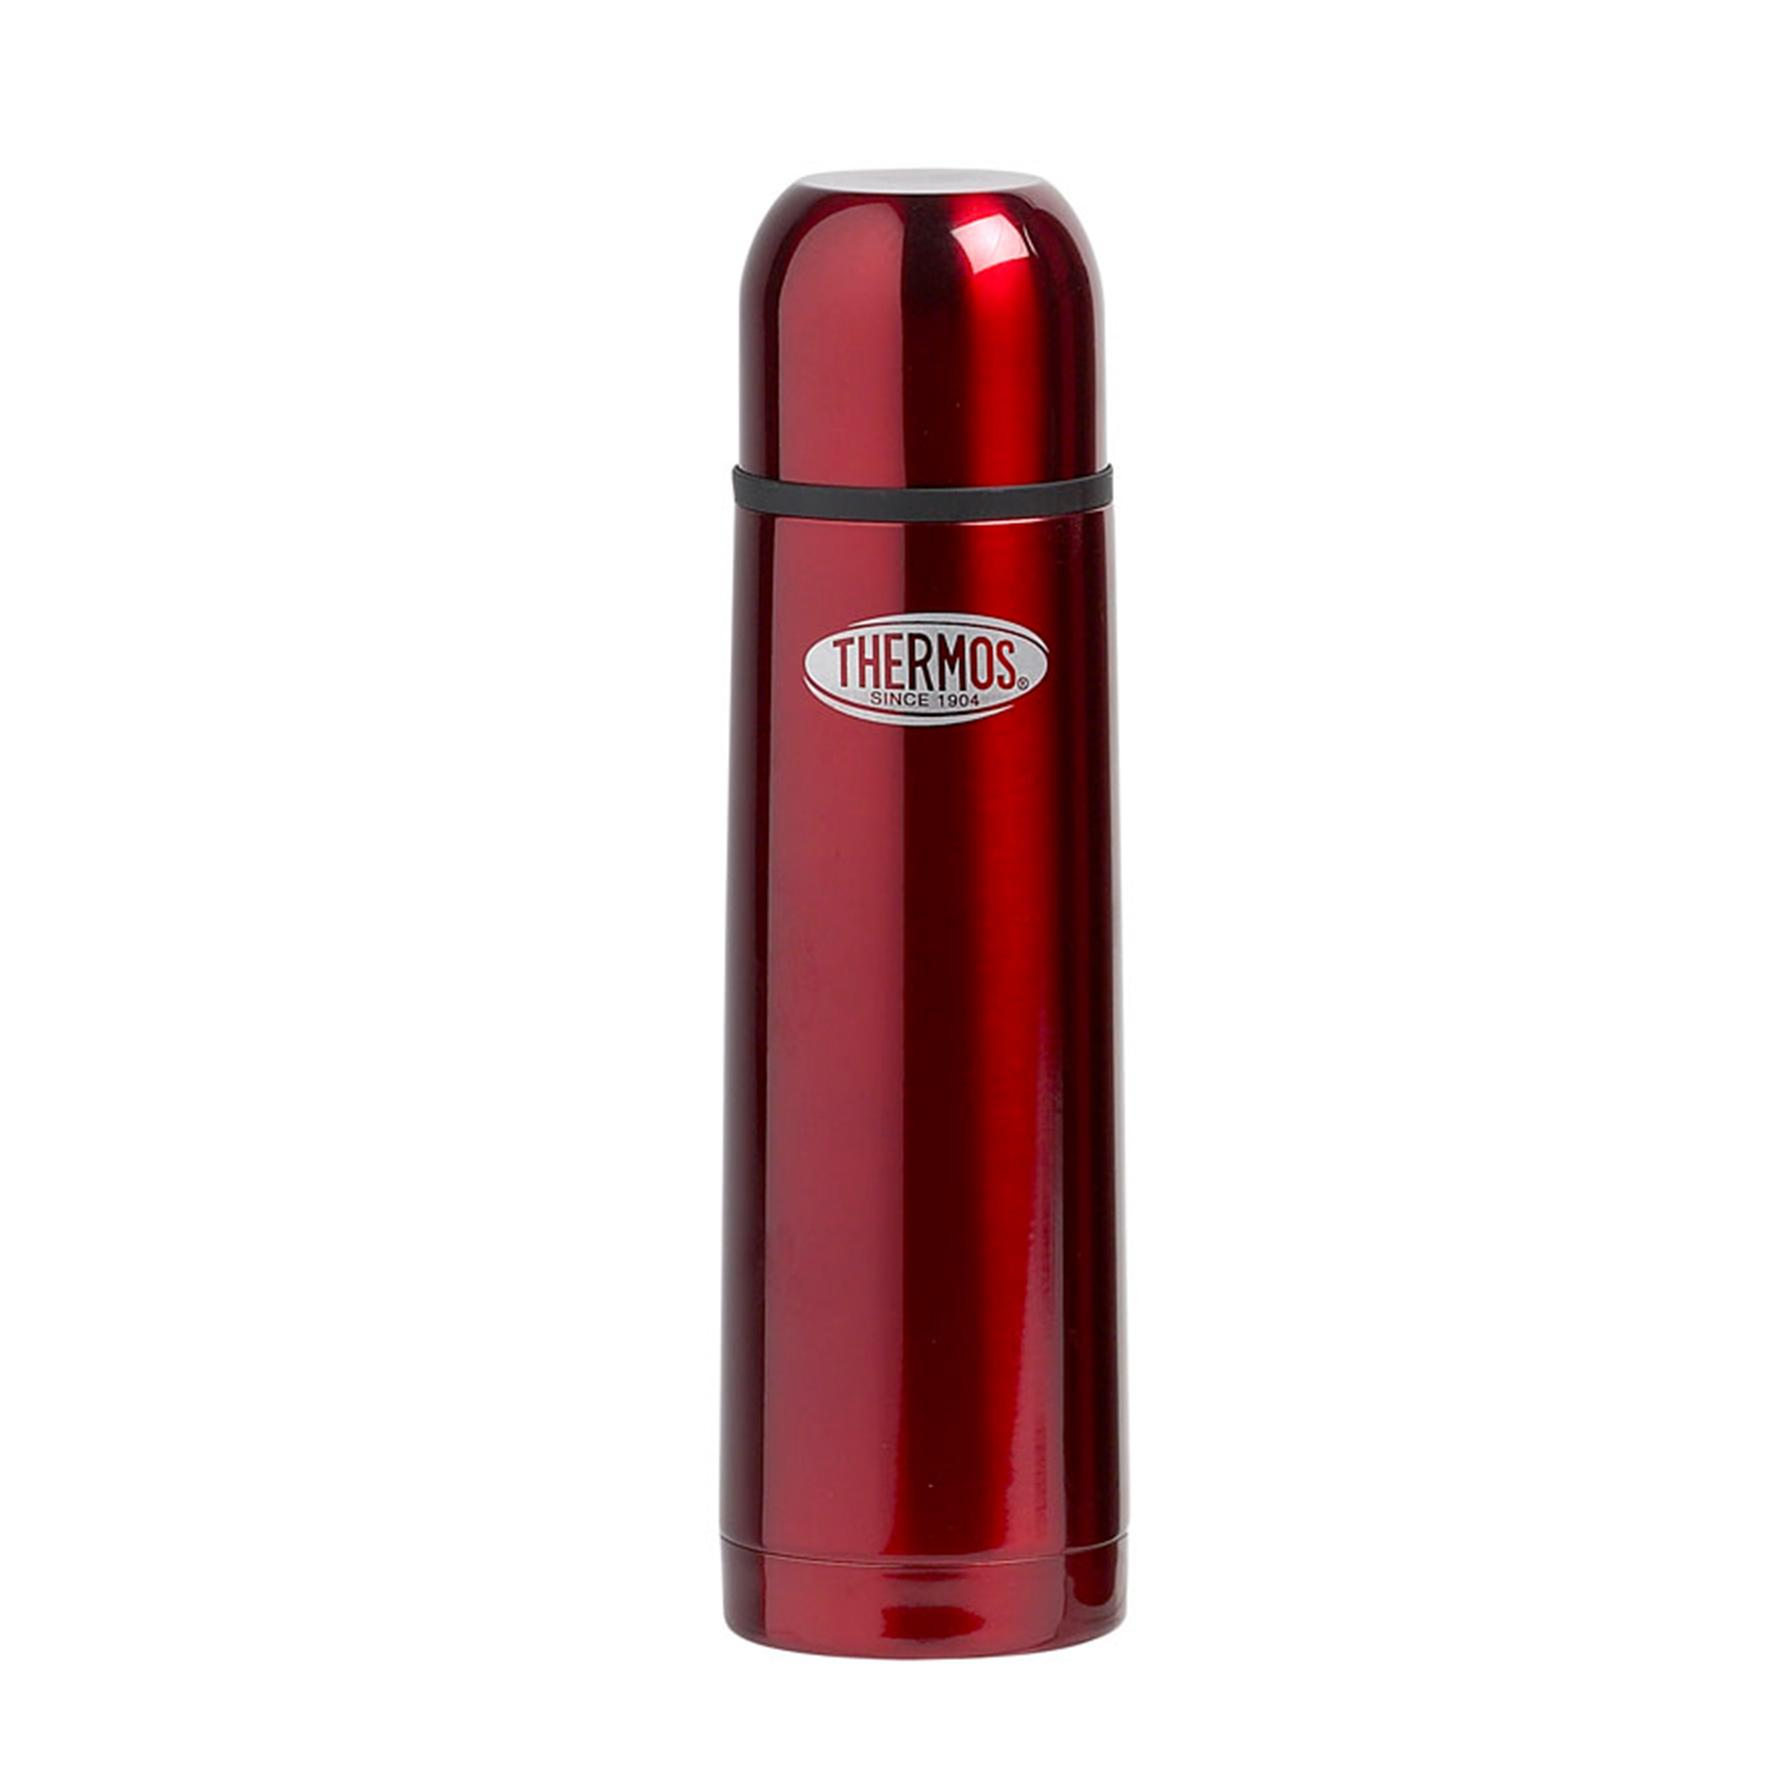 Foto termo thermos thermocafe everyday 0 5 l rojo foto 749415 for Thermos caffe